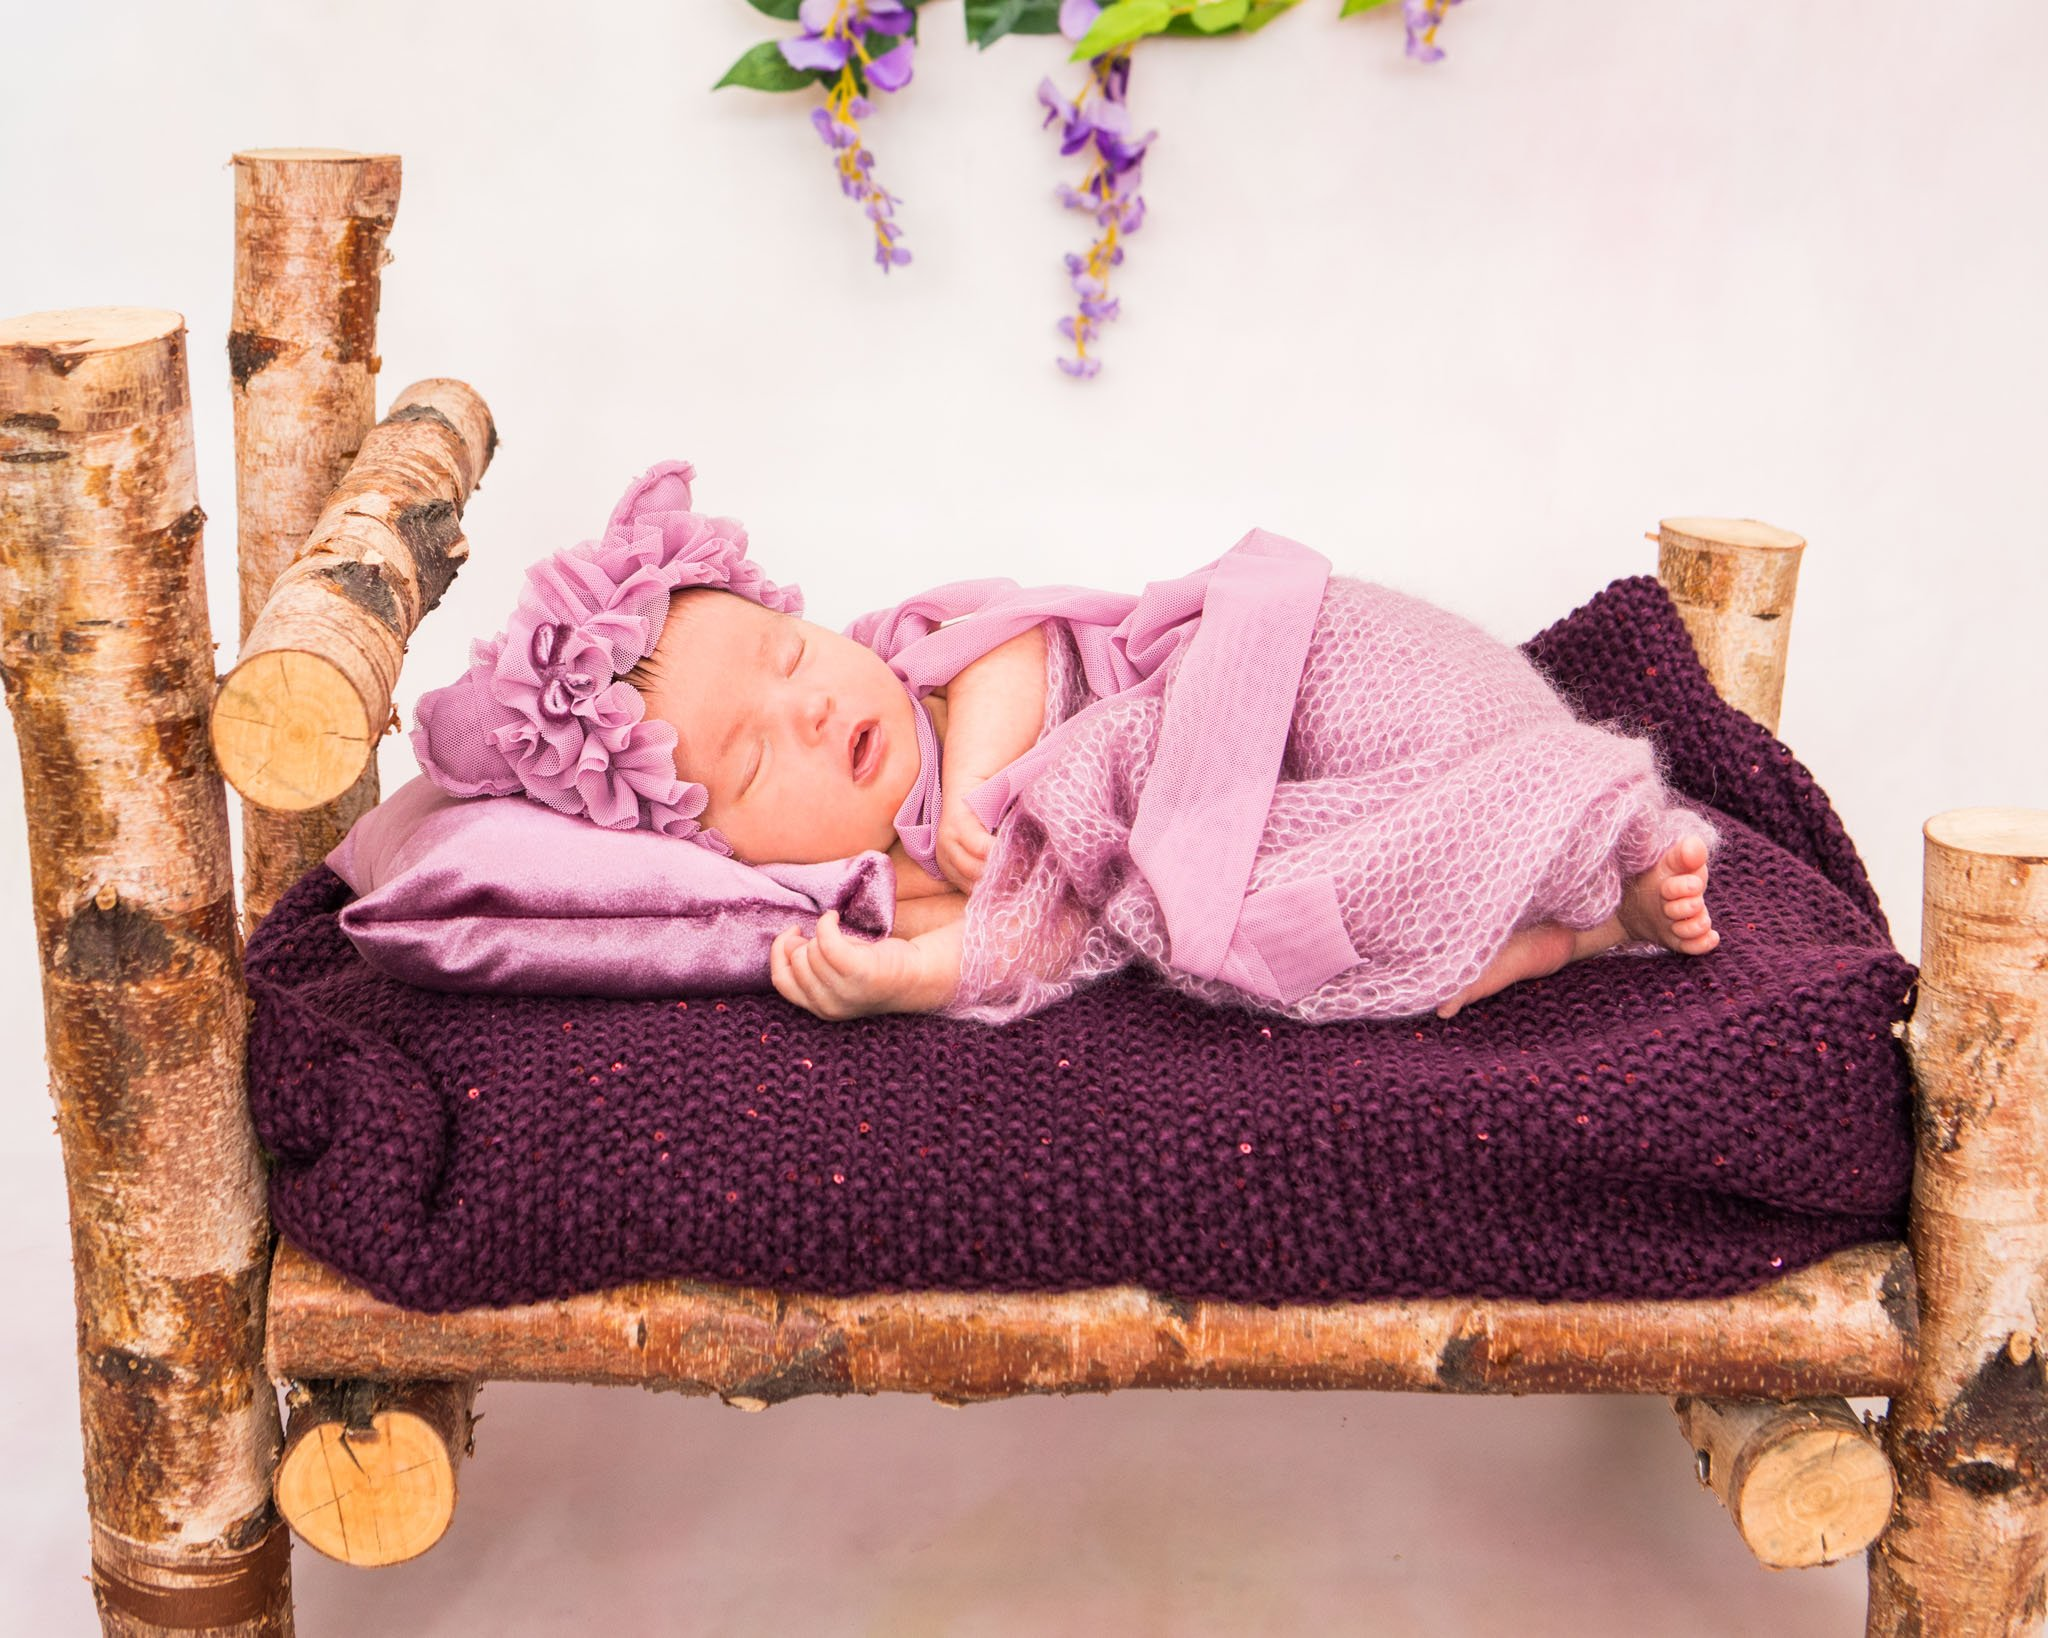 Newborn Photography, Tania Miller Photography, Cwmbran Newborn Photographer